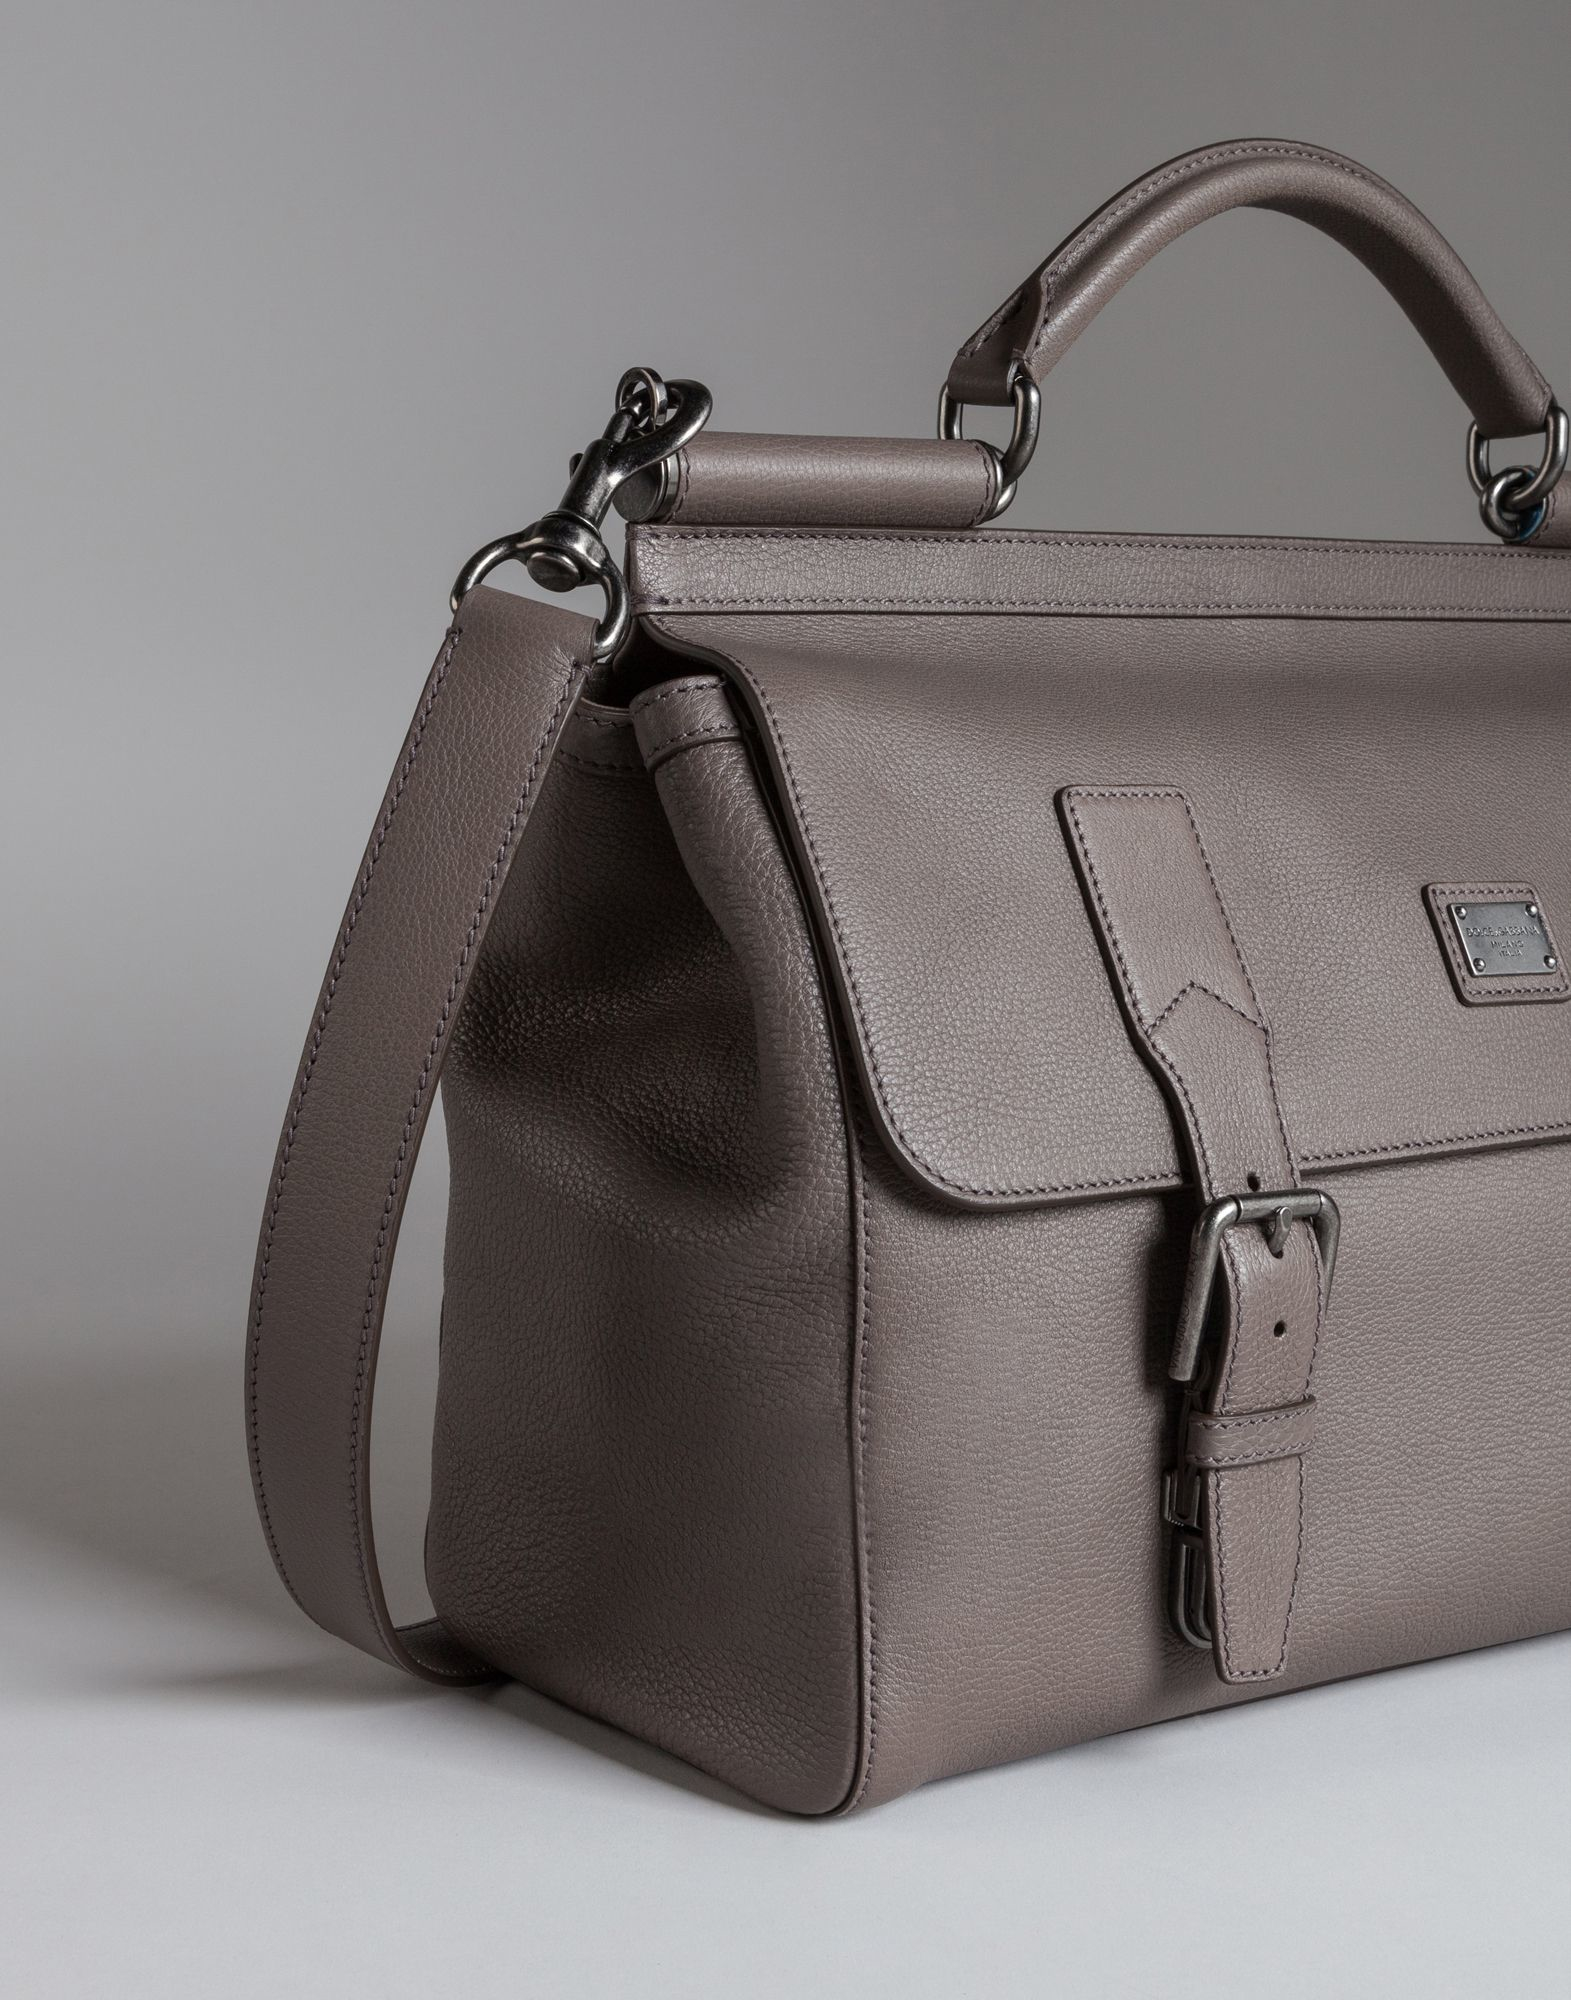 Lyst - Dolce   Gabbana Sicily Travel Bag In Leather in Gray for Men 048cfcd041124